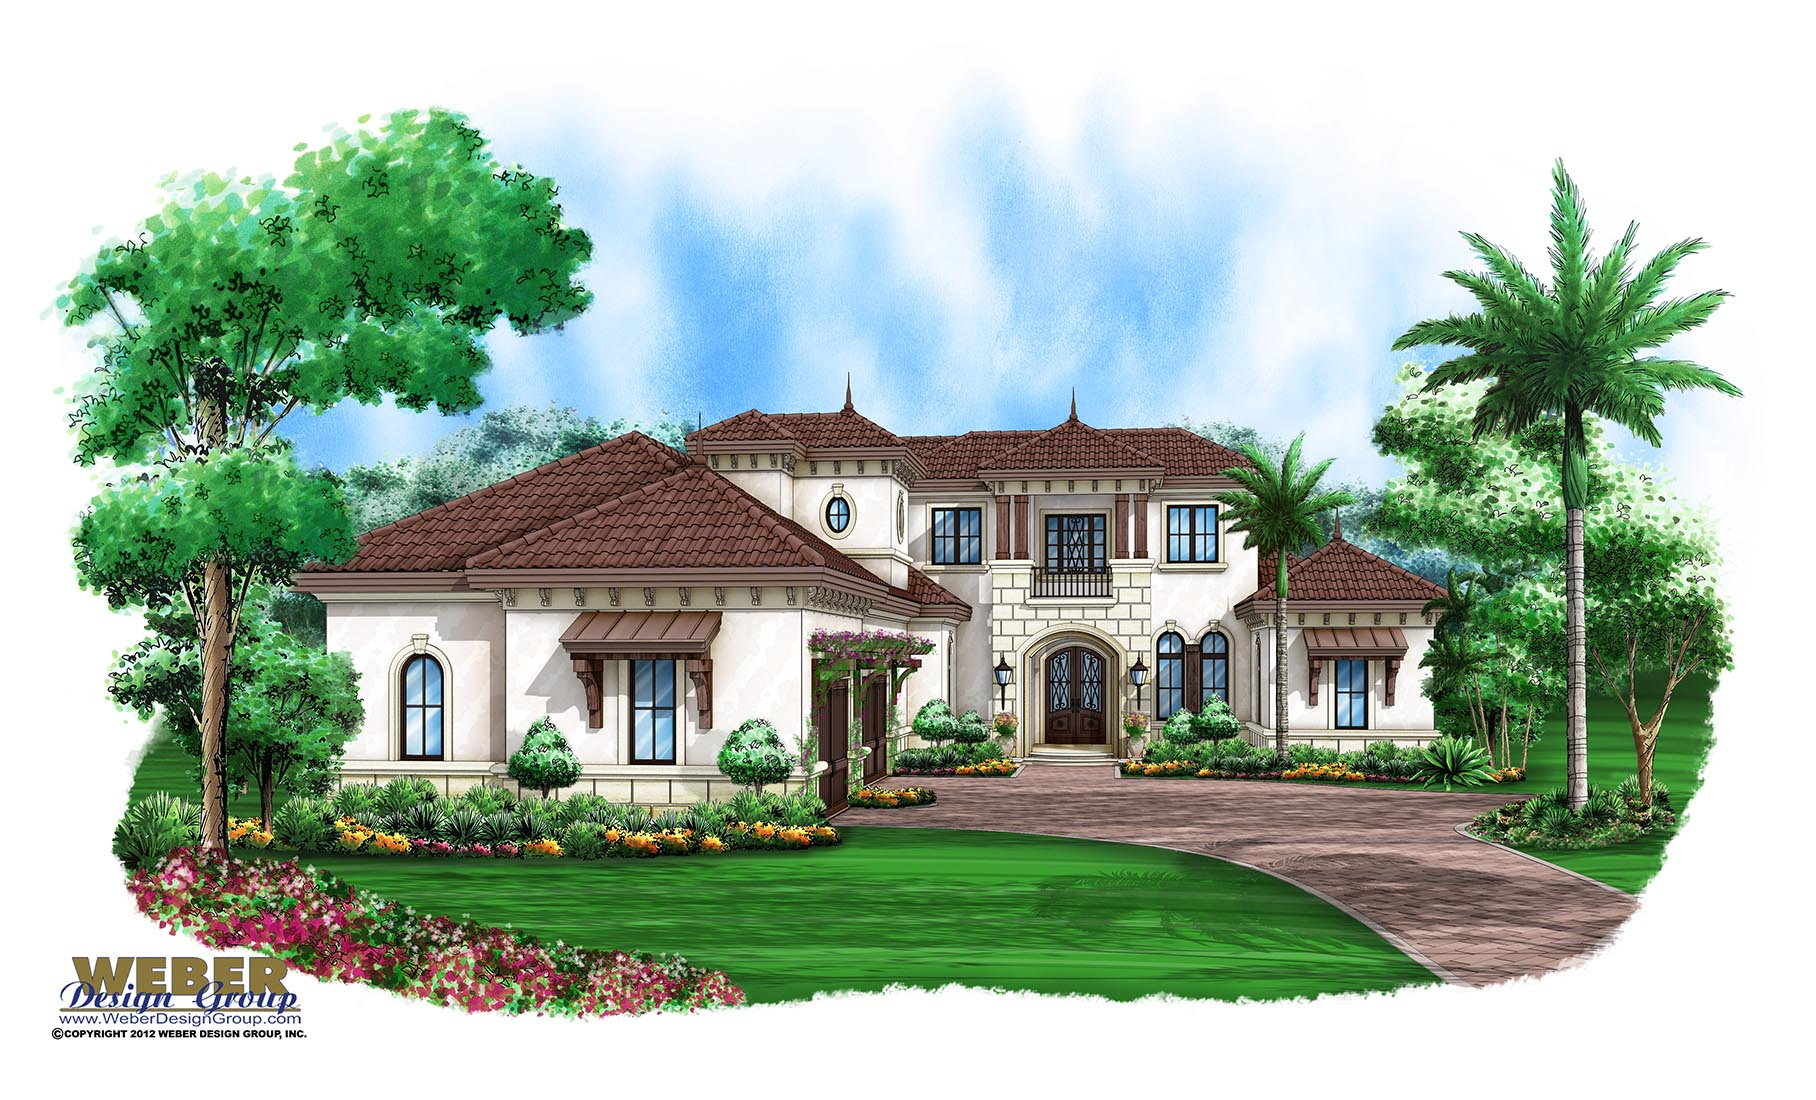 Beach house plan luxury mediterranean coastal home floor plan for Luxury house plans online